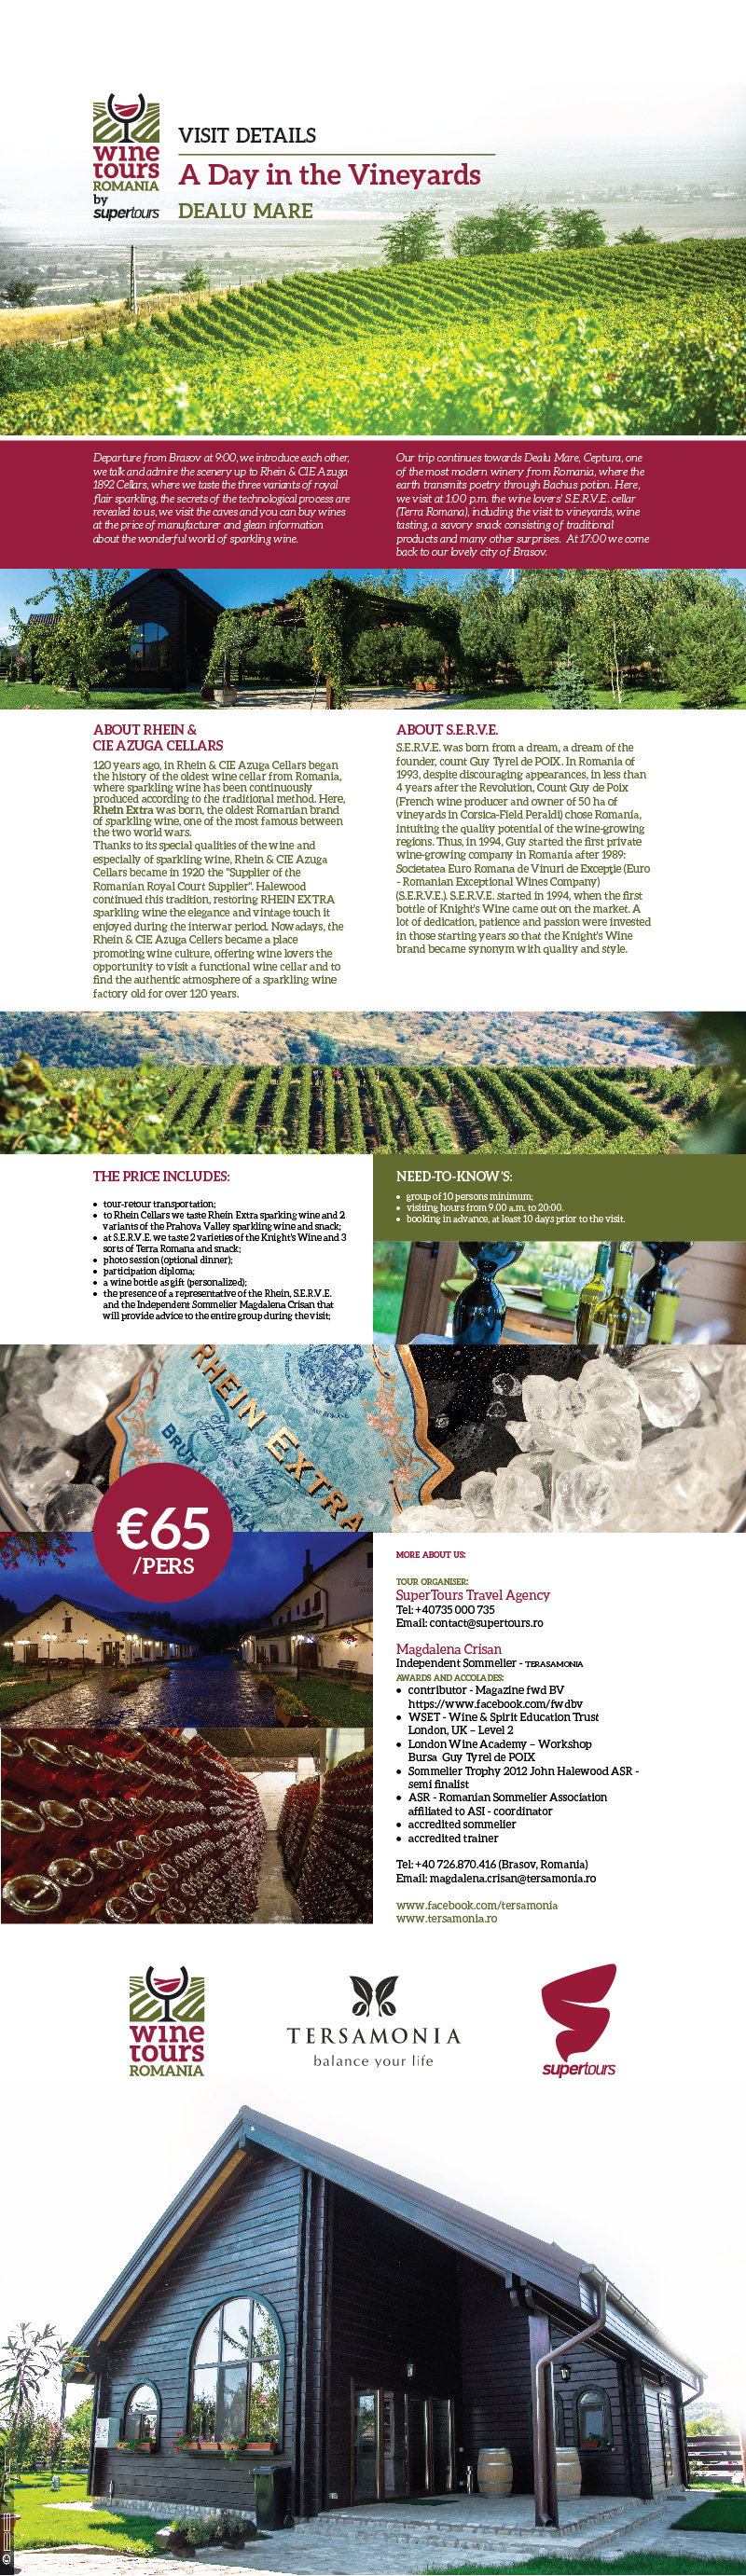 wine tours - newsletter ENG-01